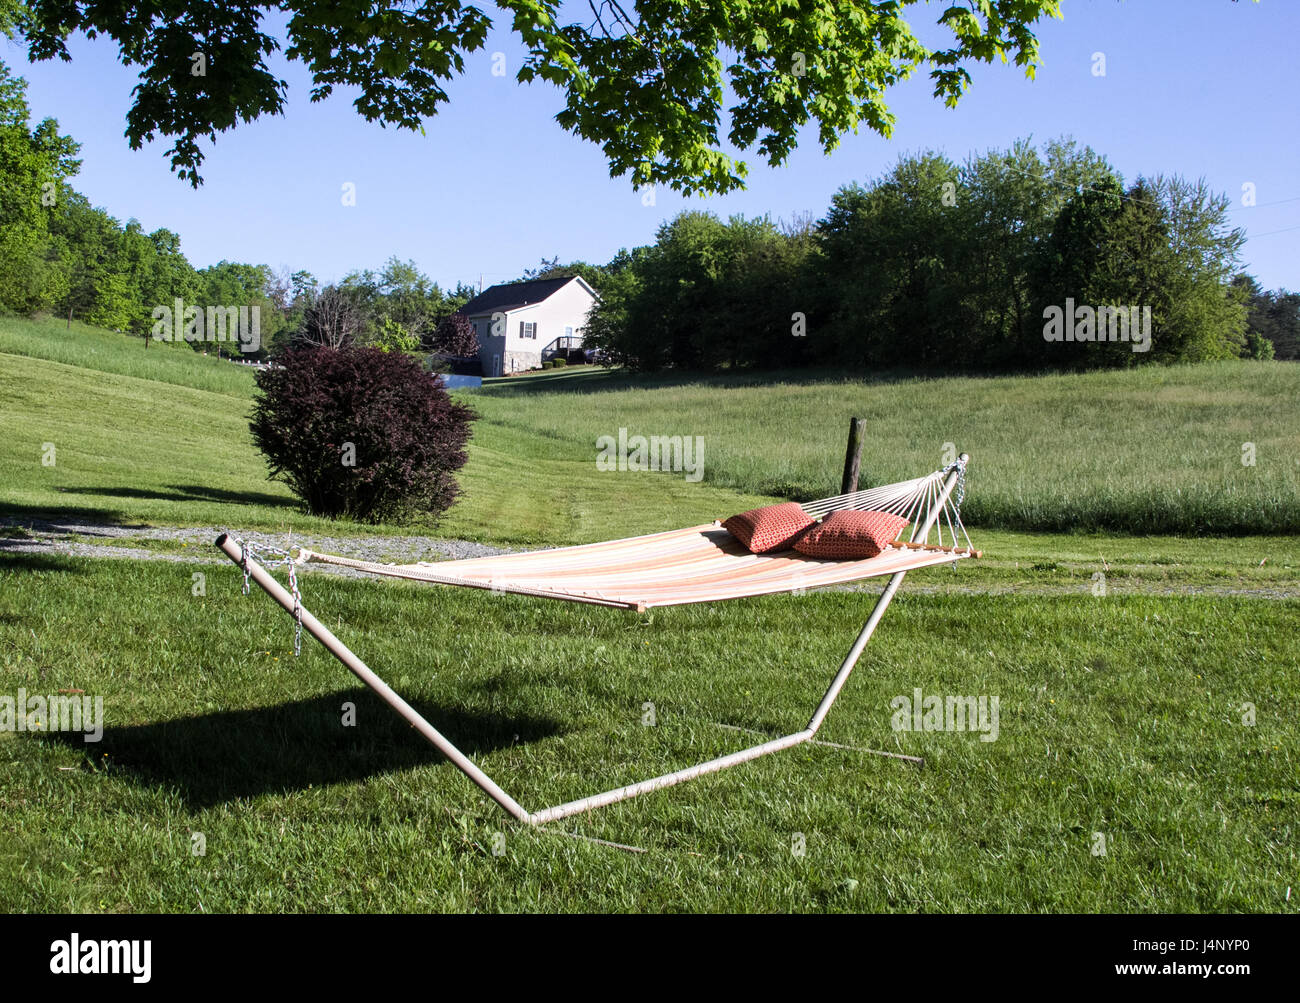 summer and a hammock - Stock Image